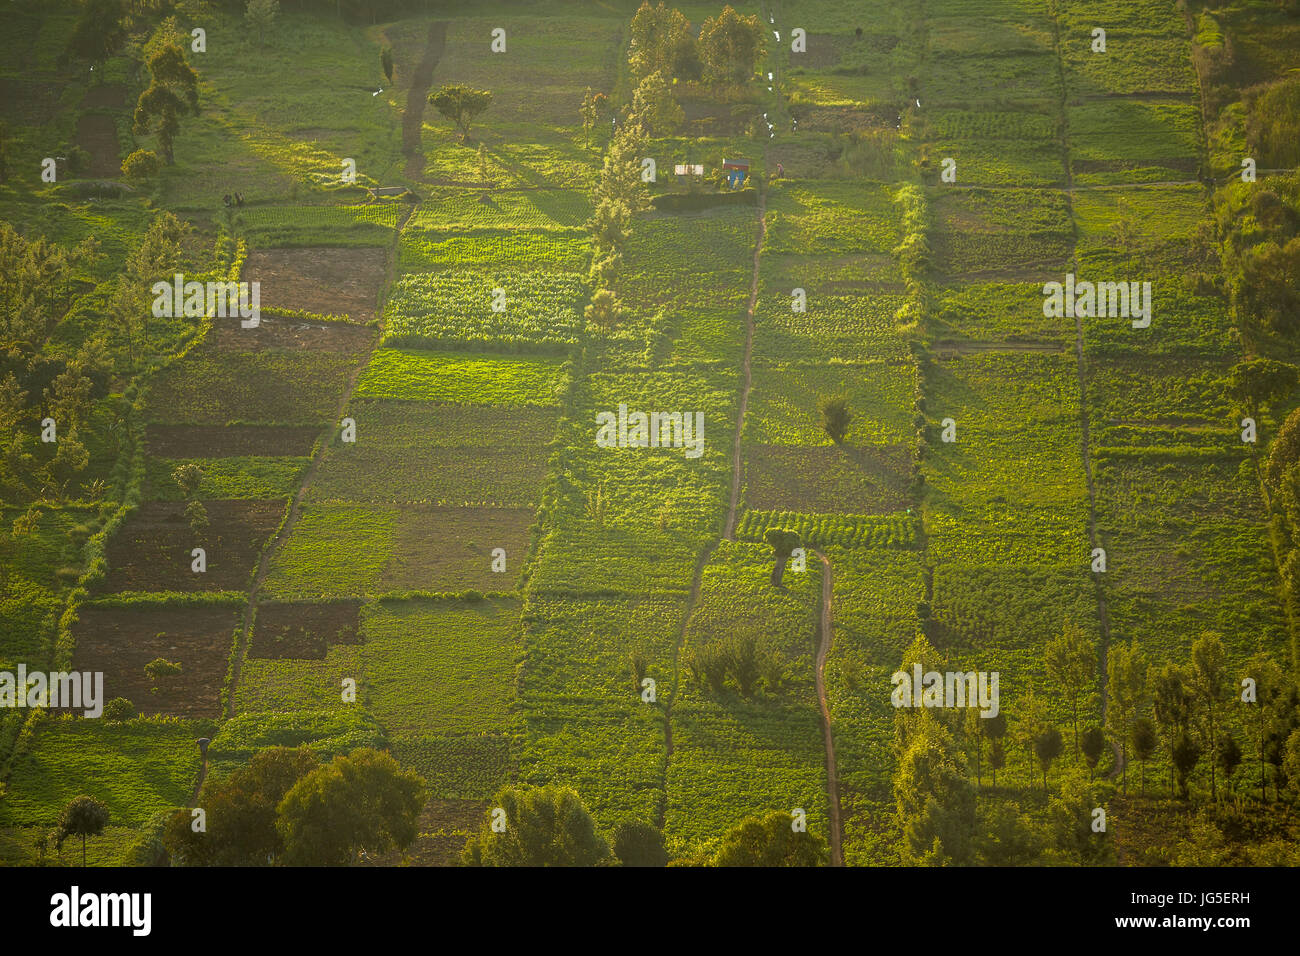 Small squared fields at sunset, Great Rift Valley, Kenya, East Africa Stock Photo